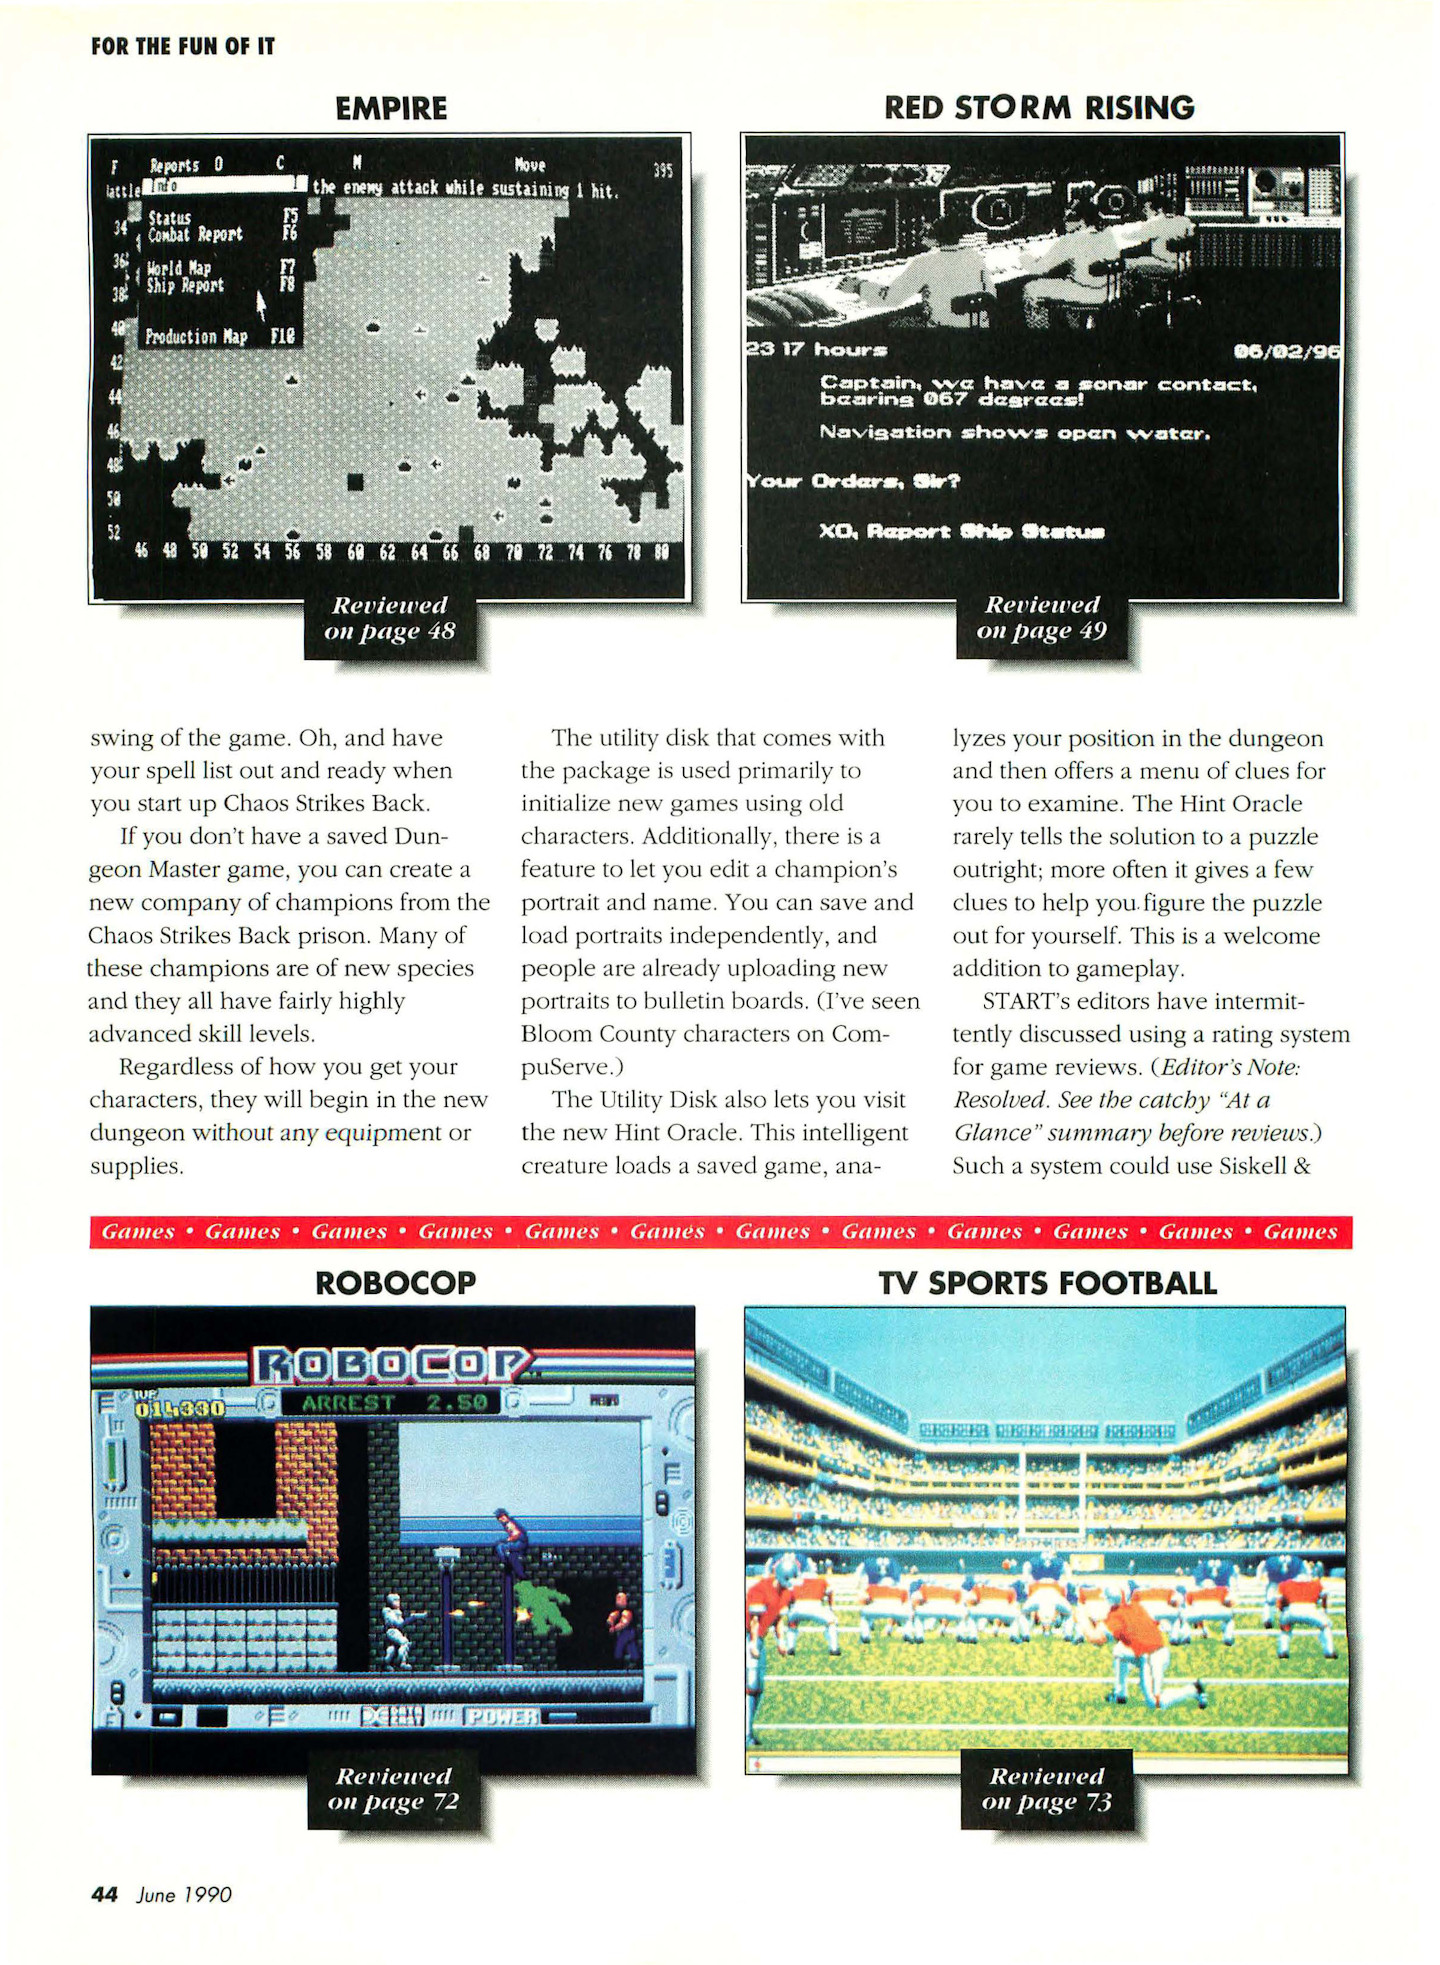 Chaos Strikes Back for Atari ST Review published in American magazine 'Start', Vol 4 No 11 June 1990, Page 44